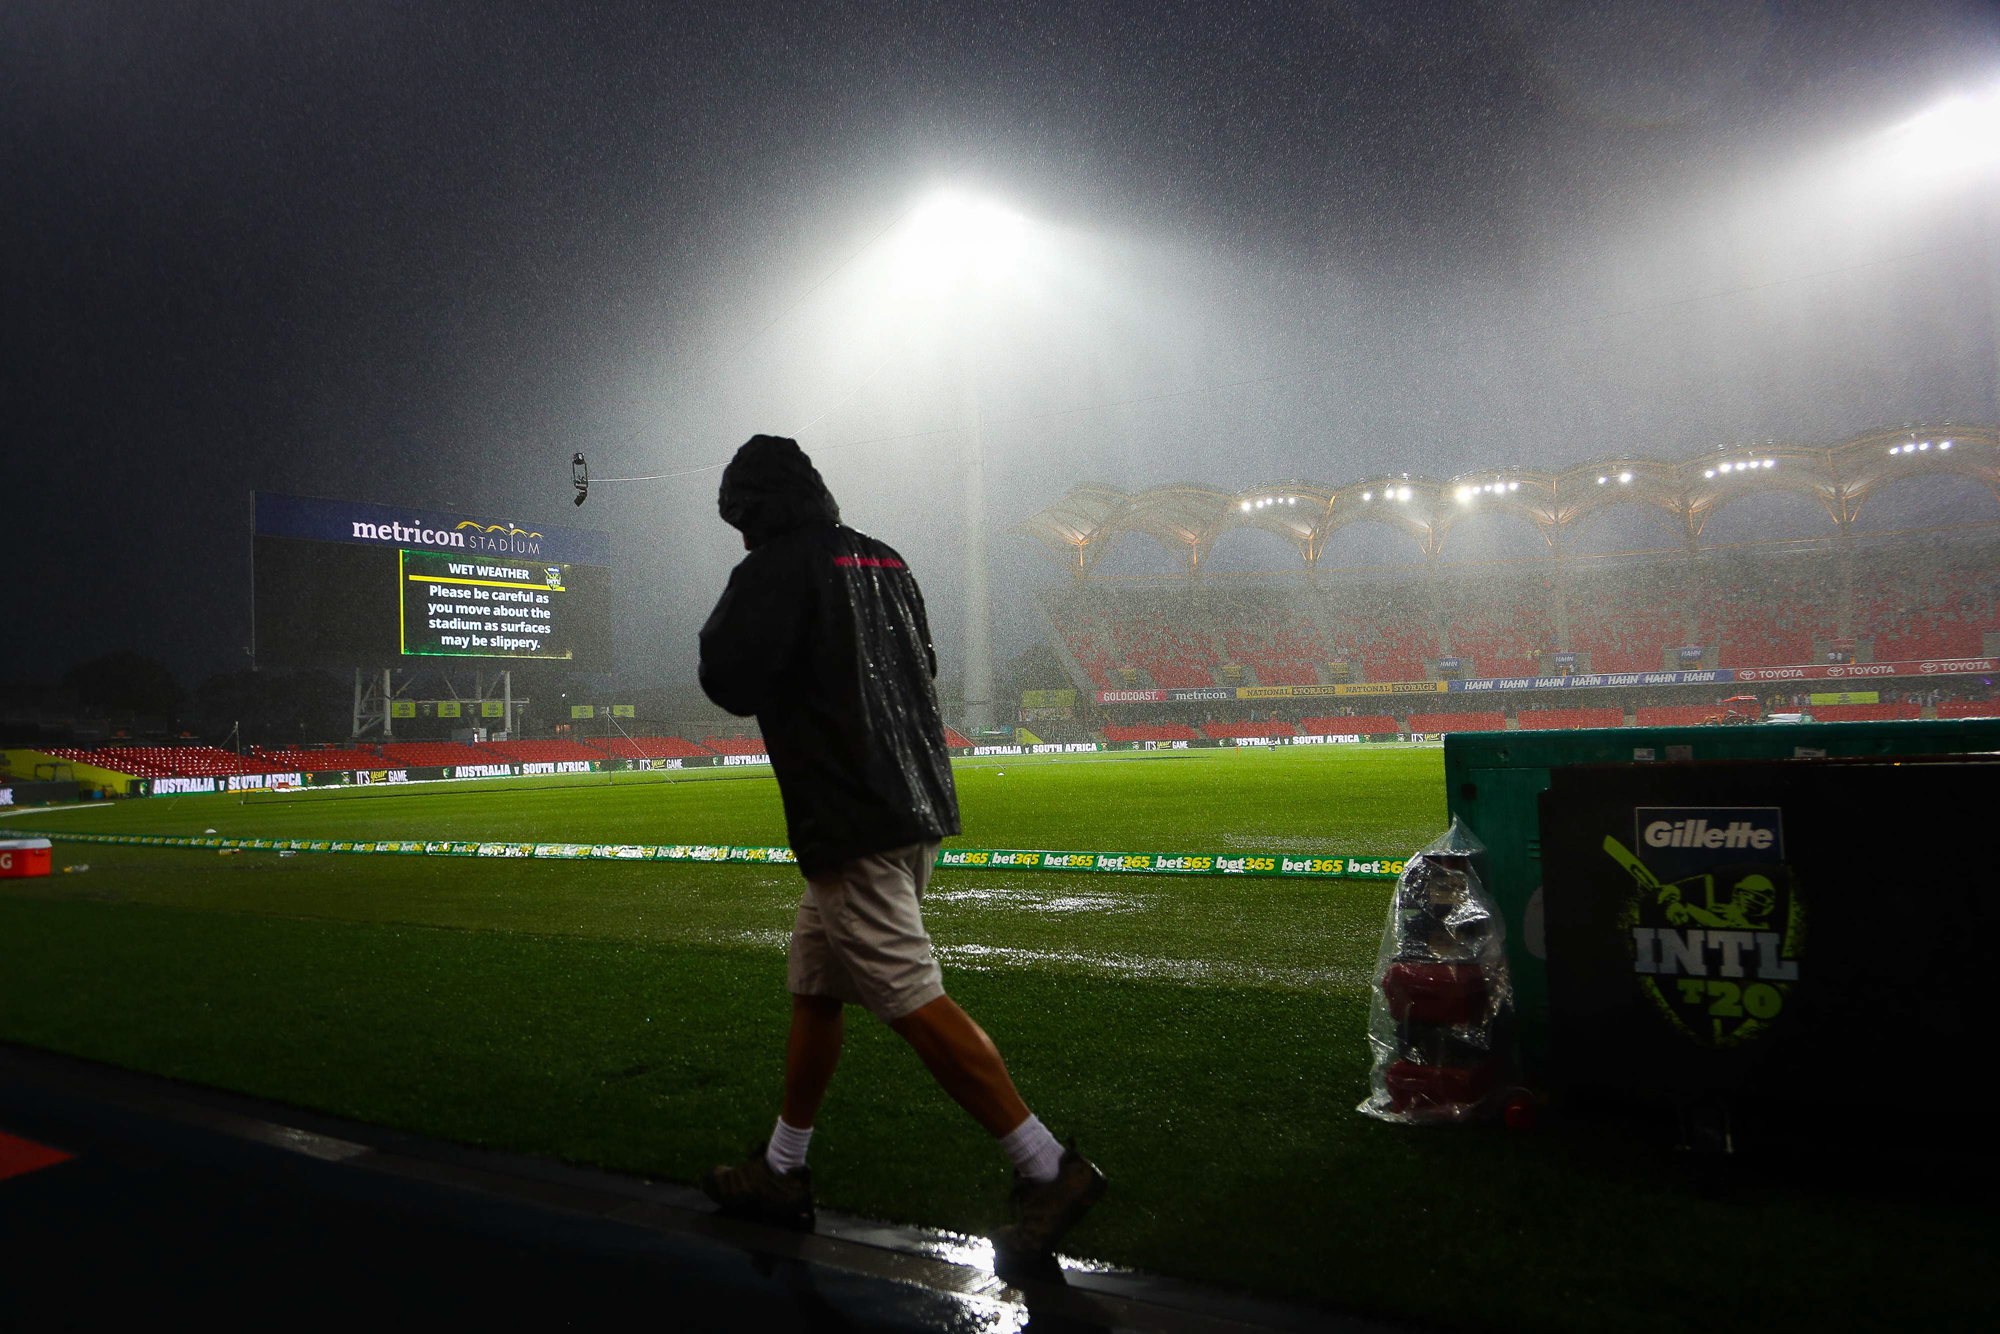 A ground attendant runs off the field during heavy rain that delayed the T20 international cricket match between Australia and South Africa at Metricon Stadium on the Gold Coast on November 17, 2018. (Photo by Patrick HAMILTON / AFP) / -- IMAGE RESTRICTED